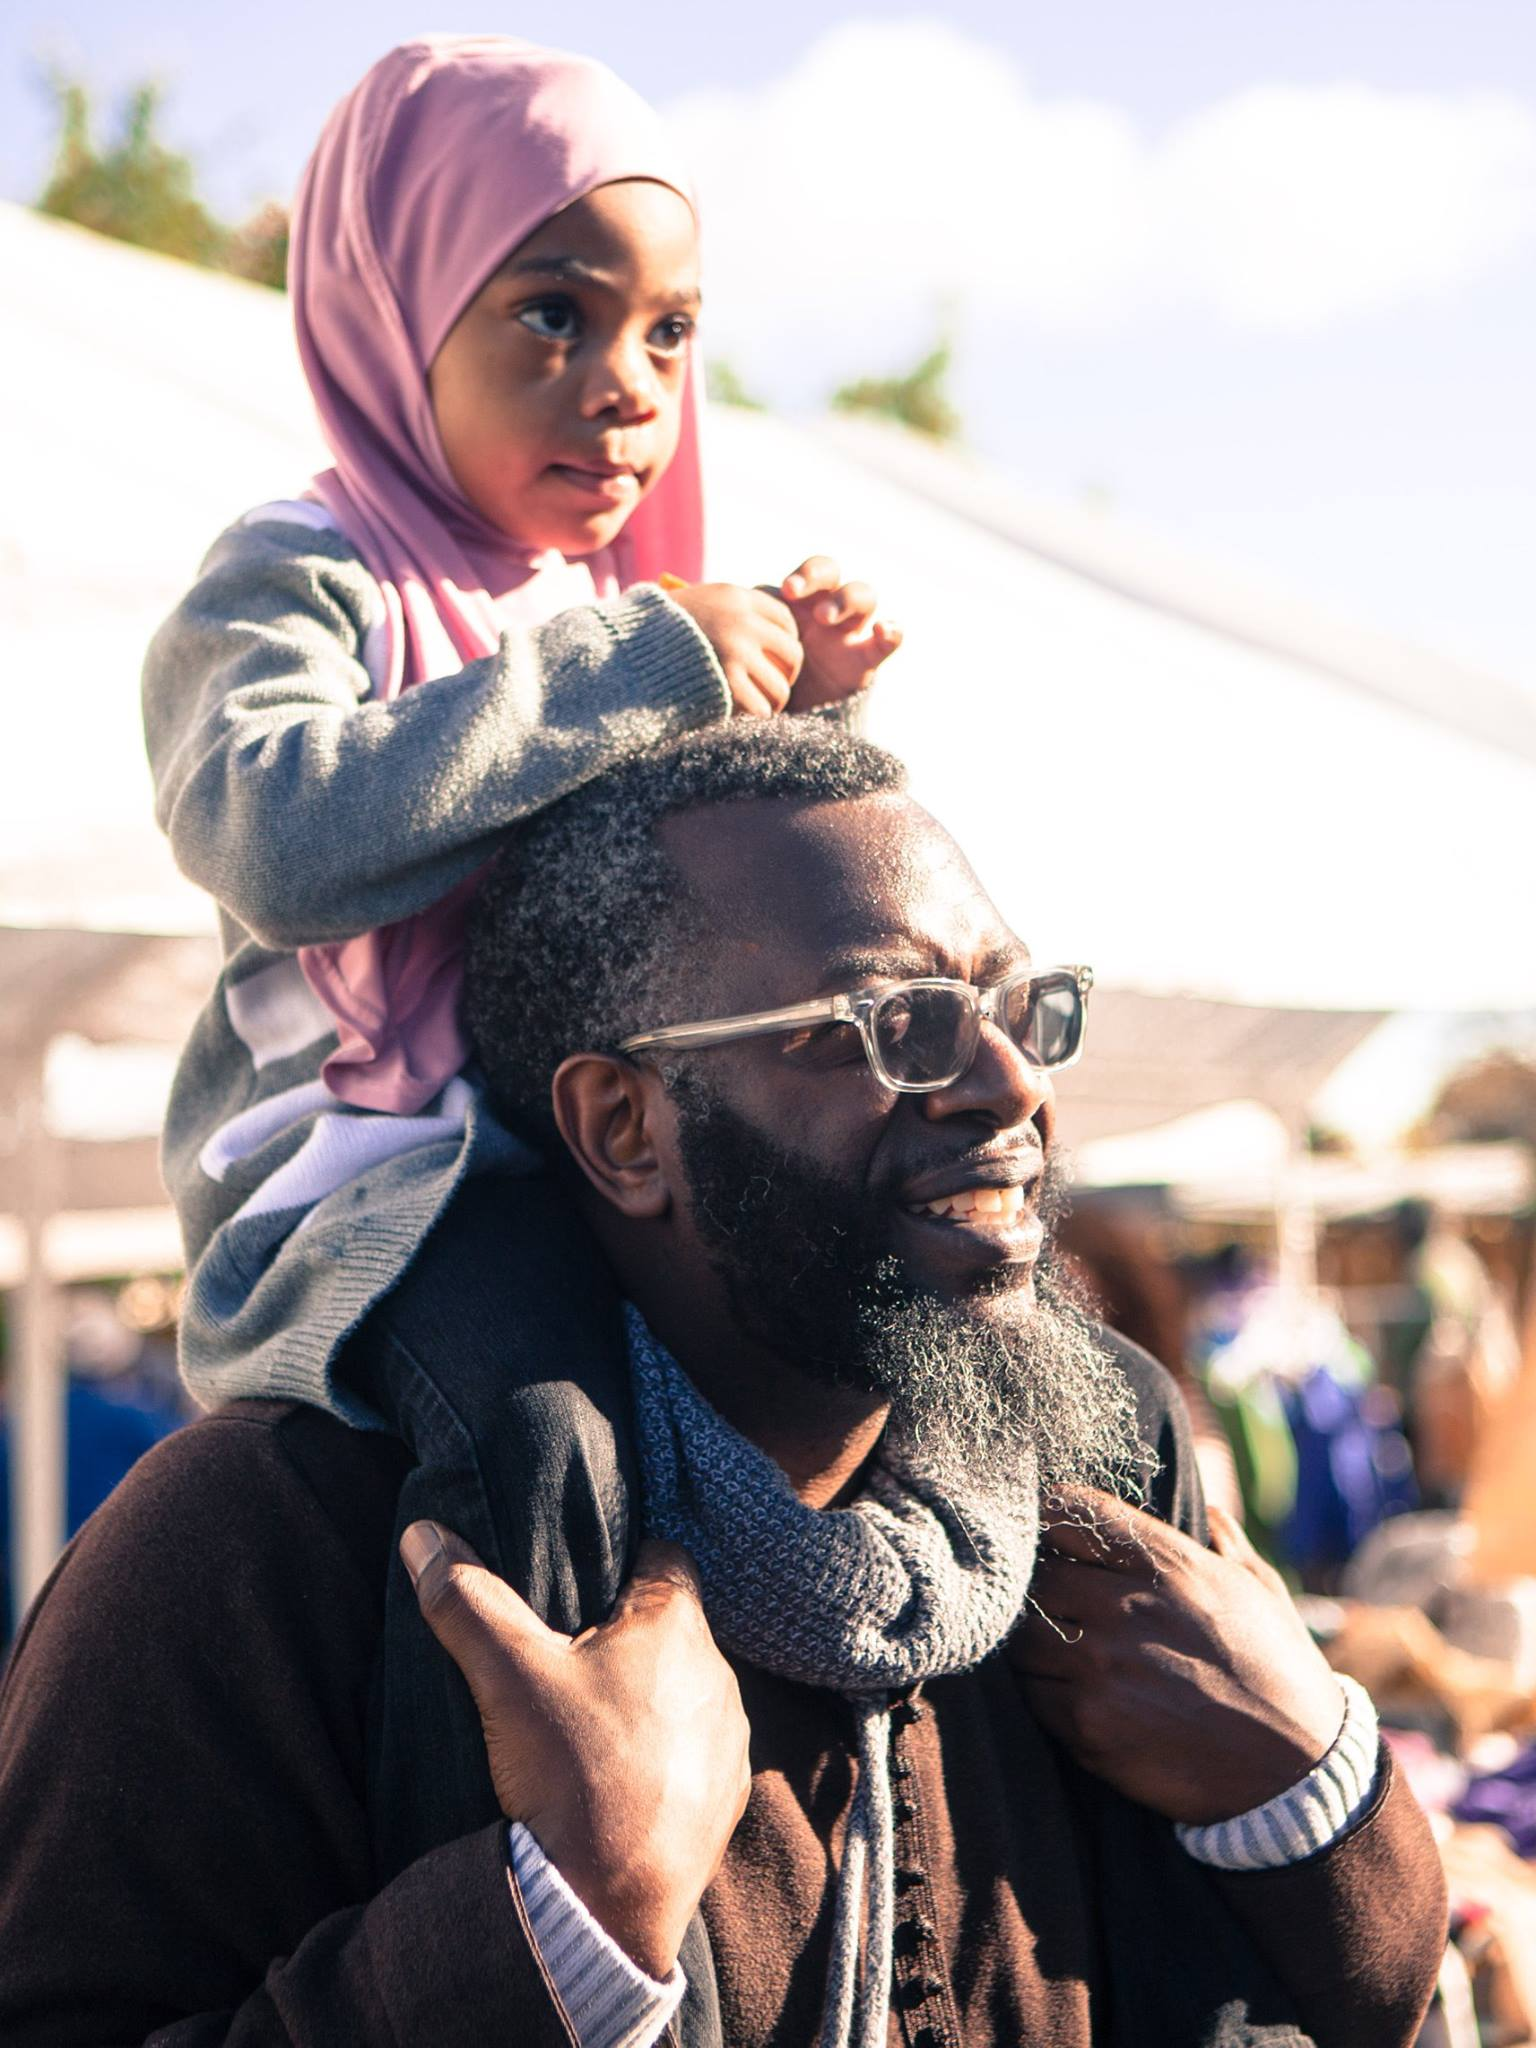 A young, African American child is sitting on the shoulders of an older, Black man. The picture is taken outside on a sunny day.